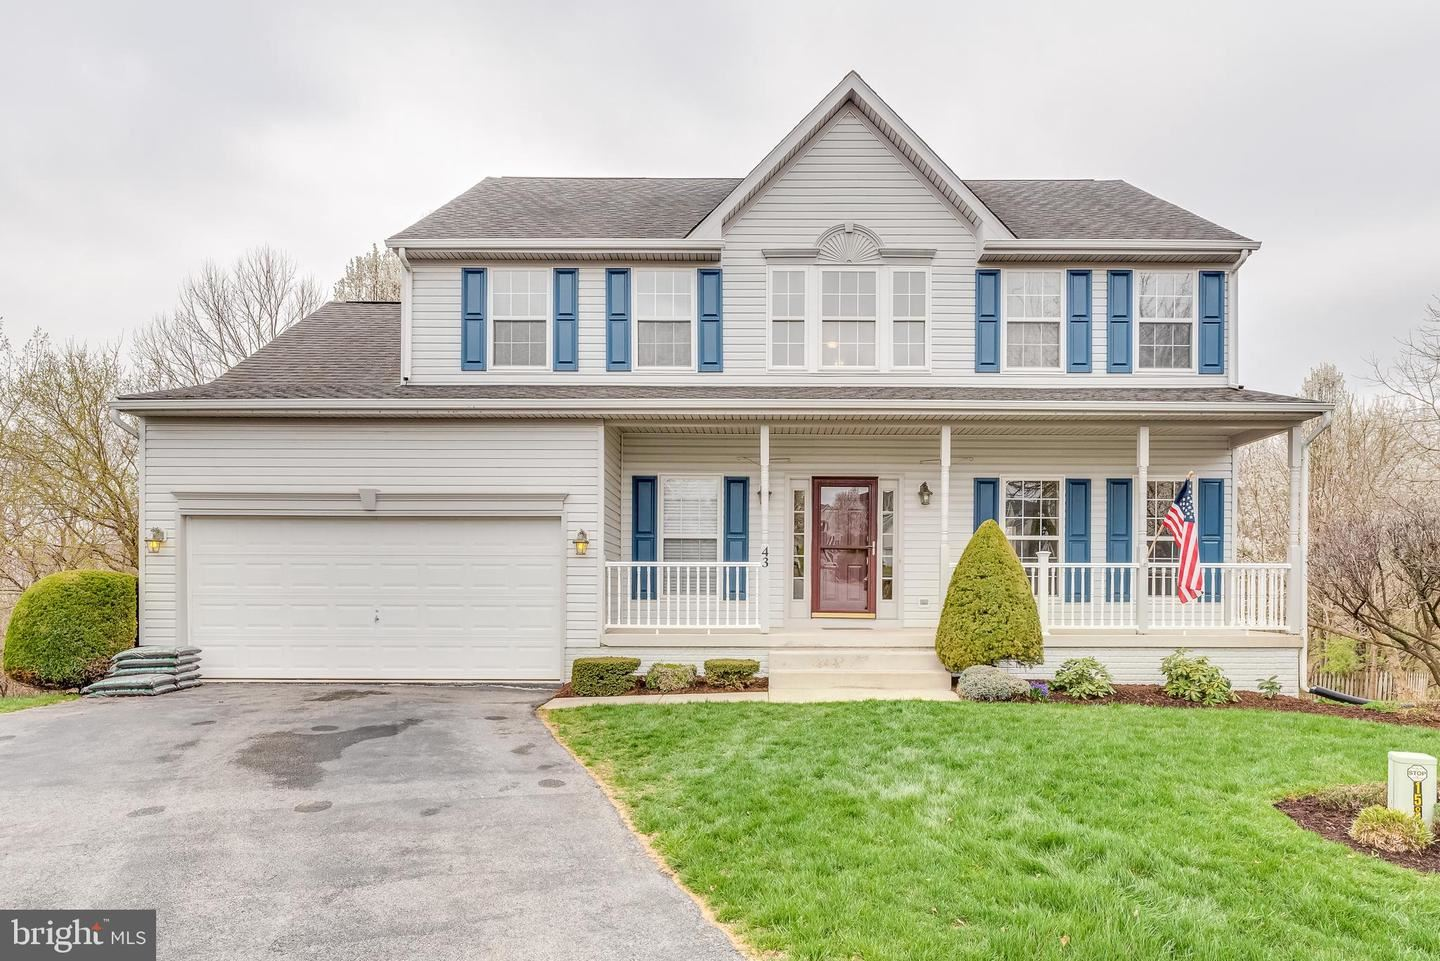 43 PUTTERS CT, Martinsburg, WV 25405 - #: WVBE175794